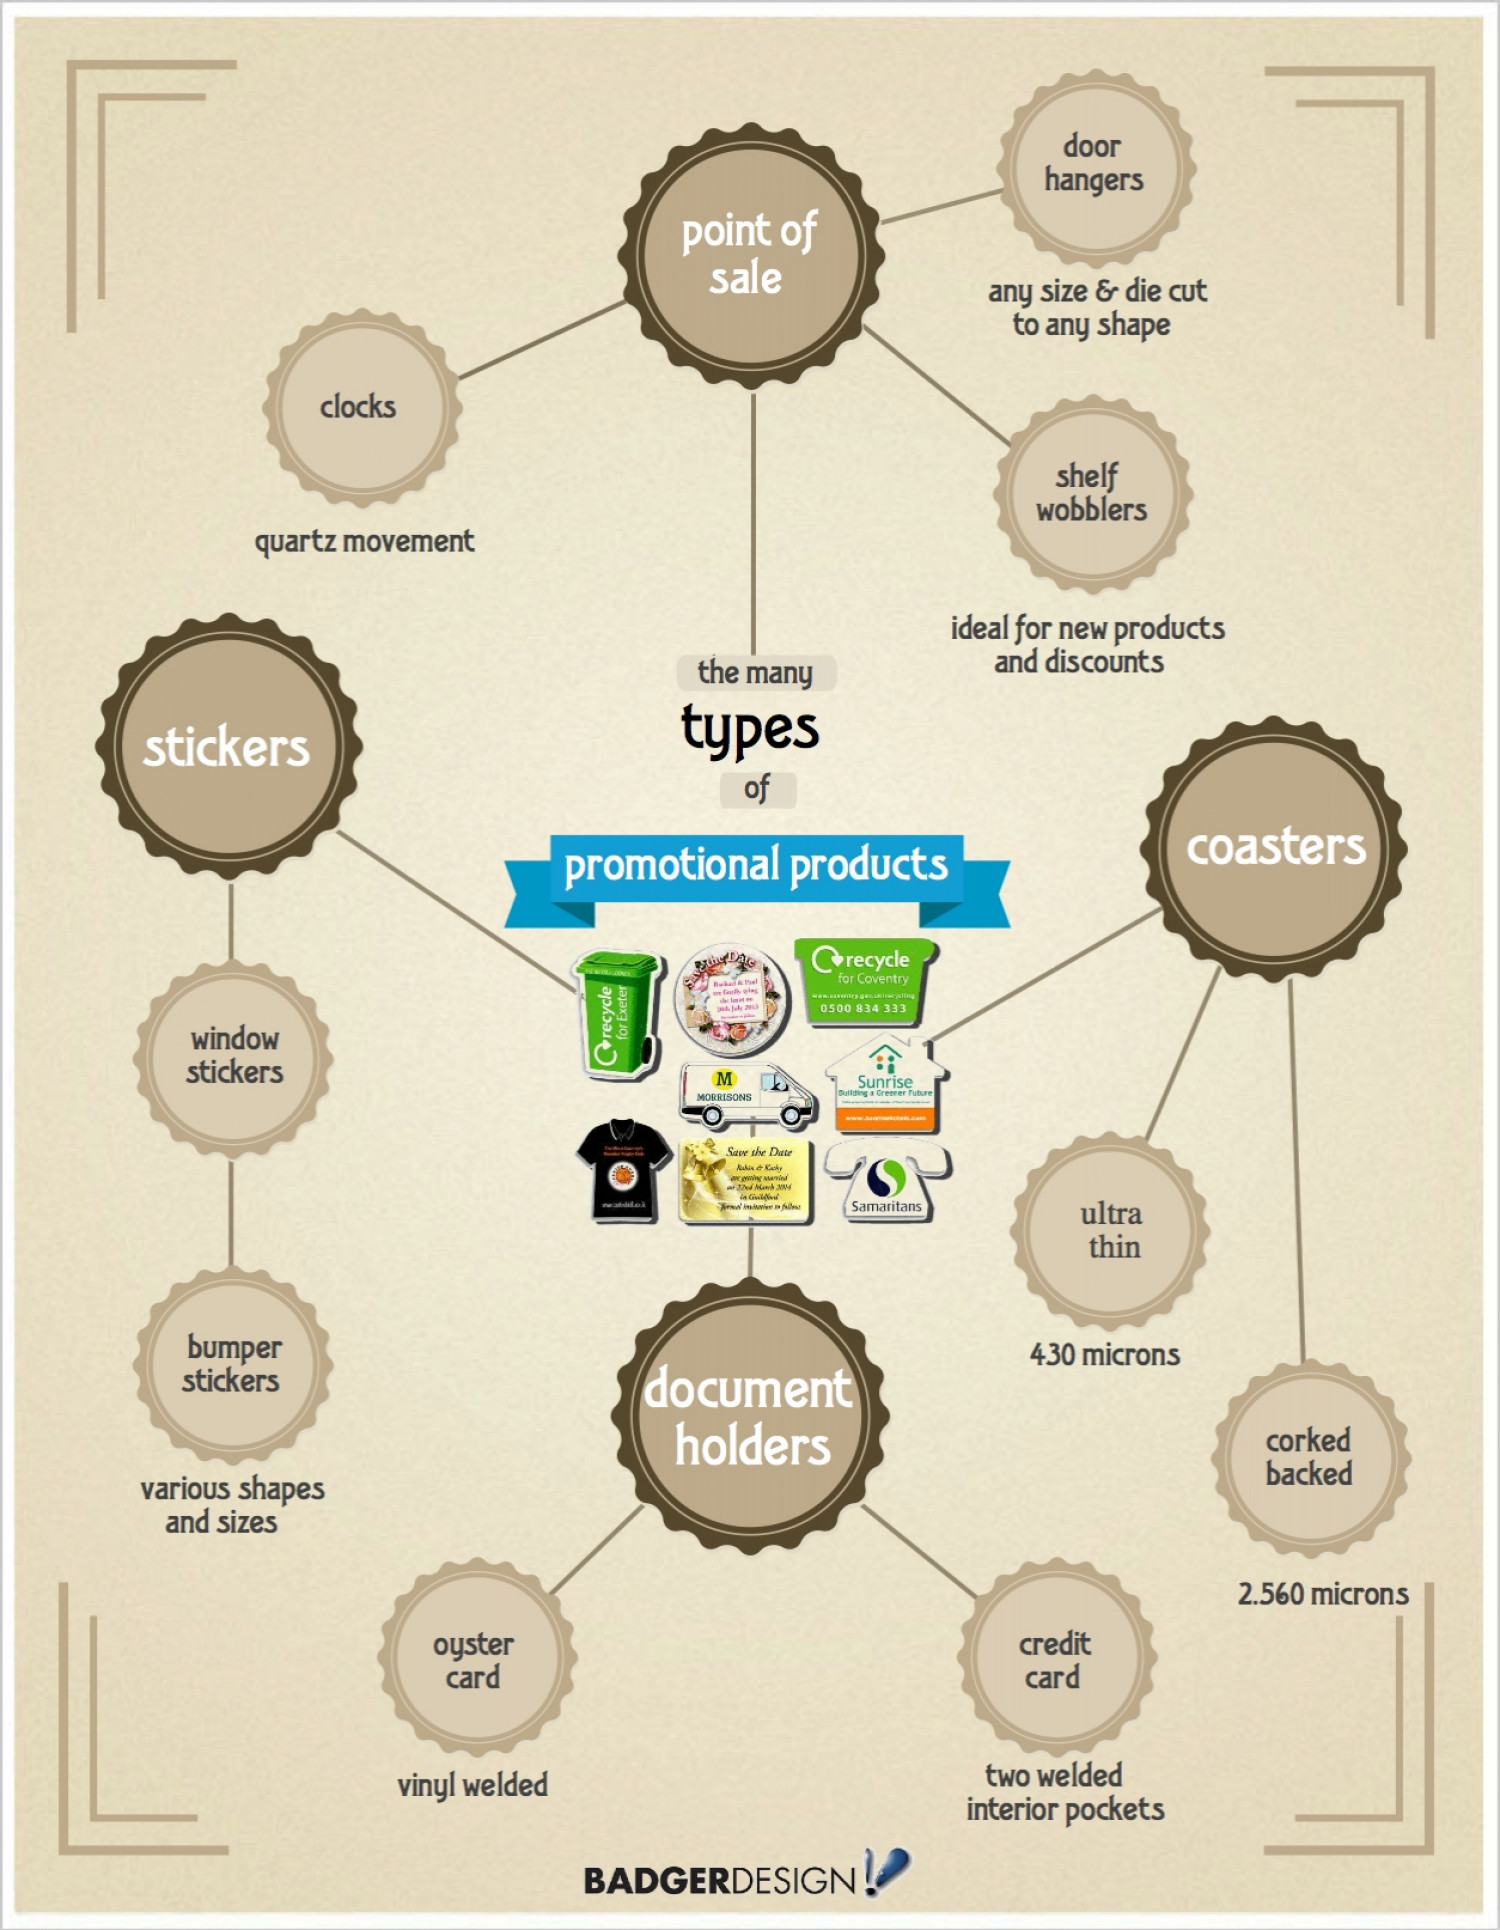 Types of Promotional Products Infographic